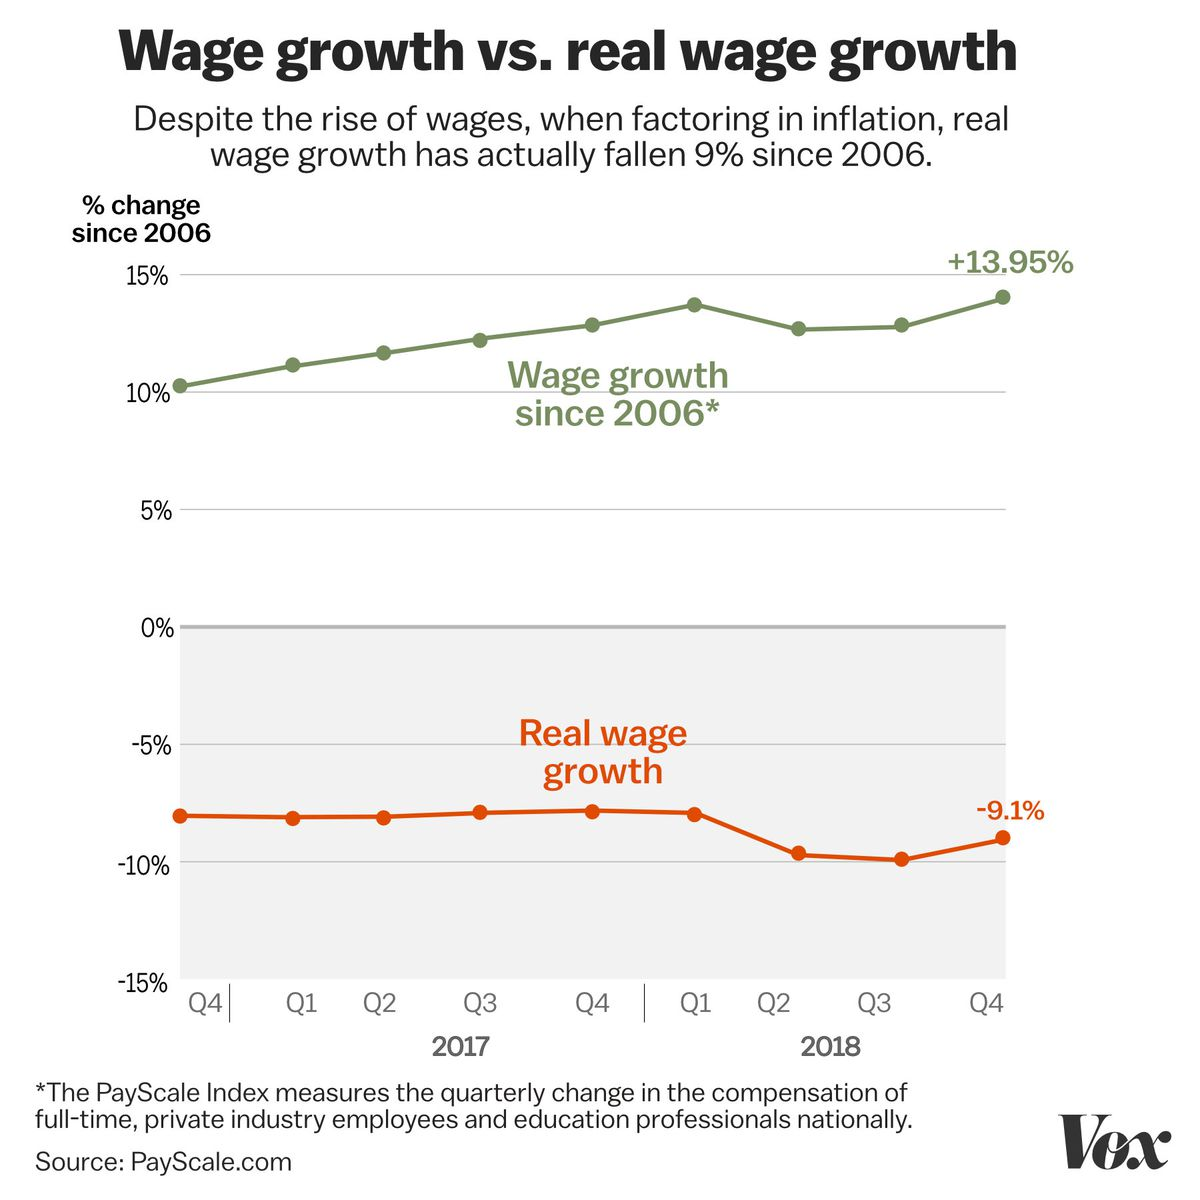 Chart showing decline in real wage growth since 2006.